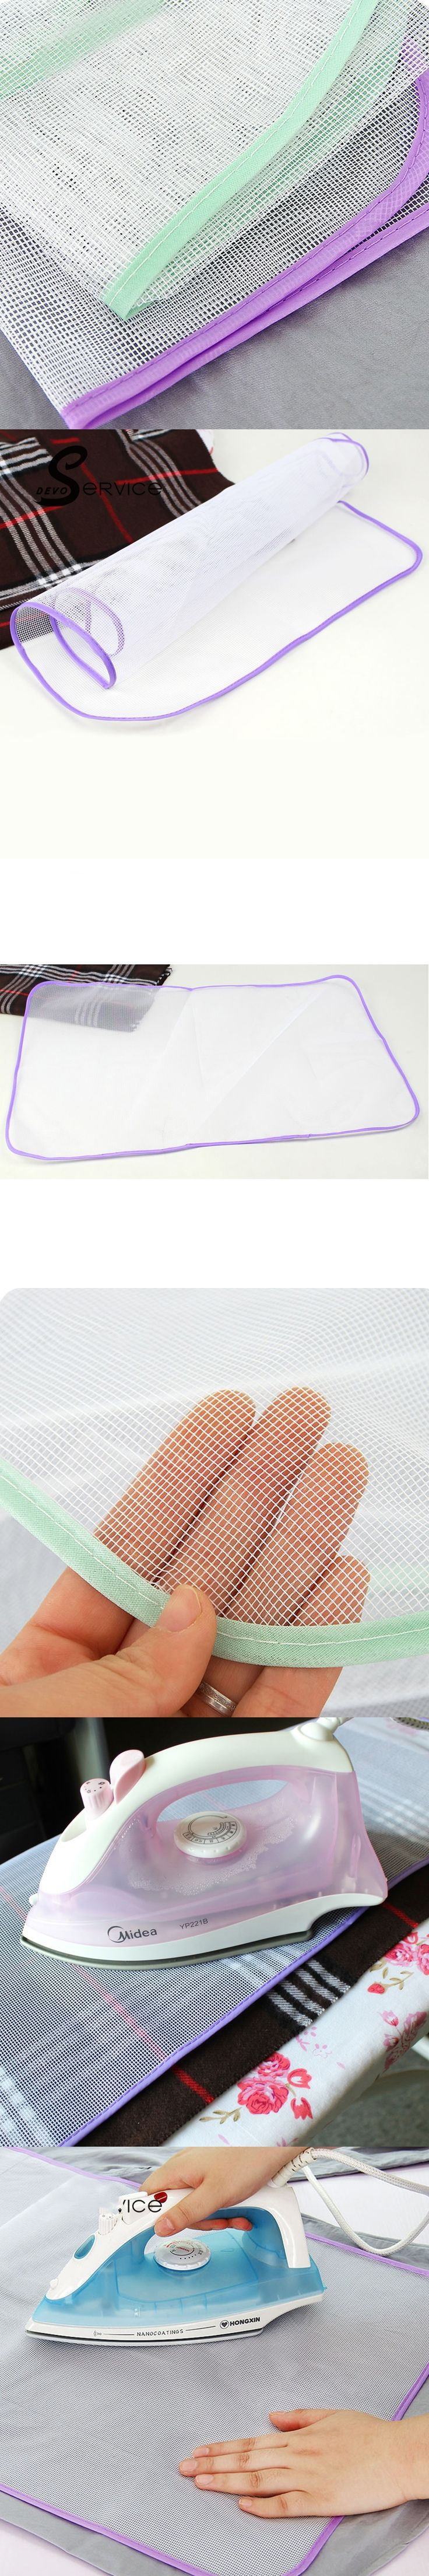 Japanese high temperature ironing cloth ironing pad protective insulation, anti-scald household ironing application cloth